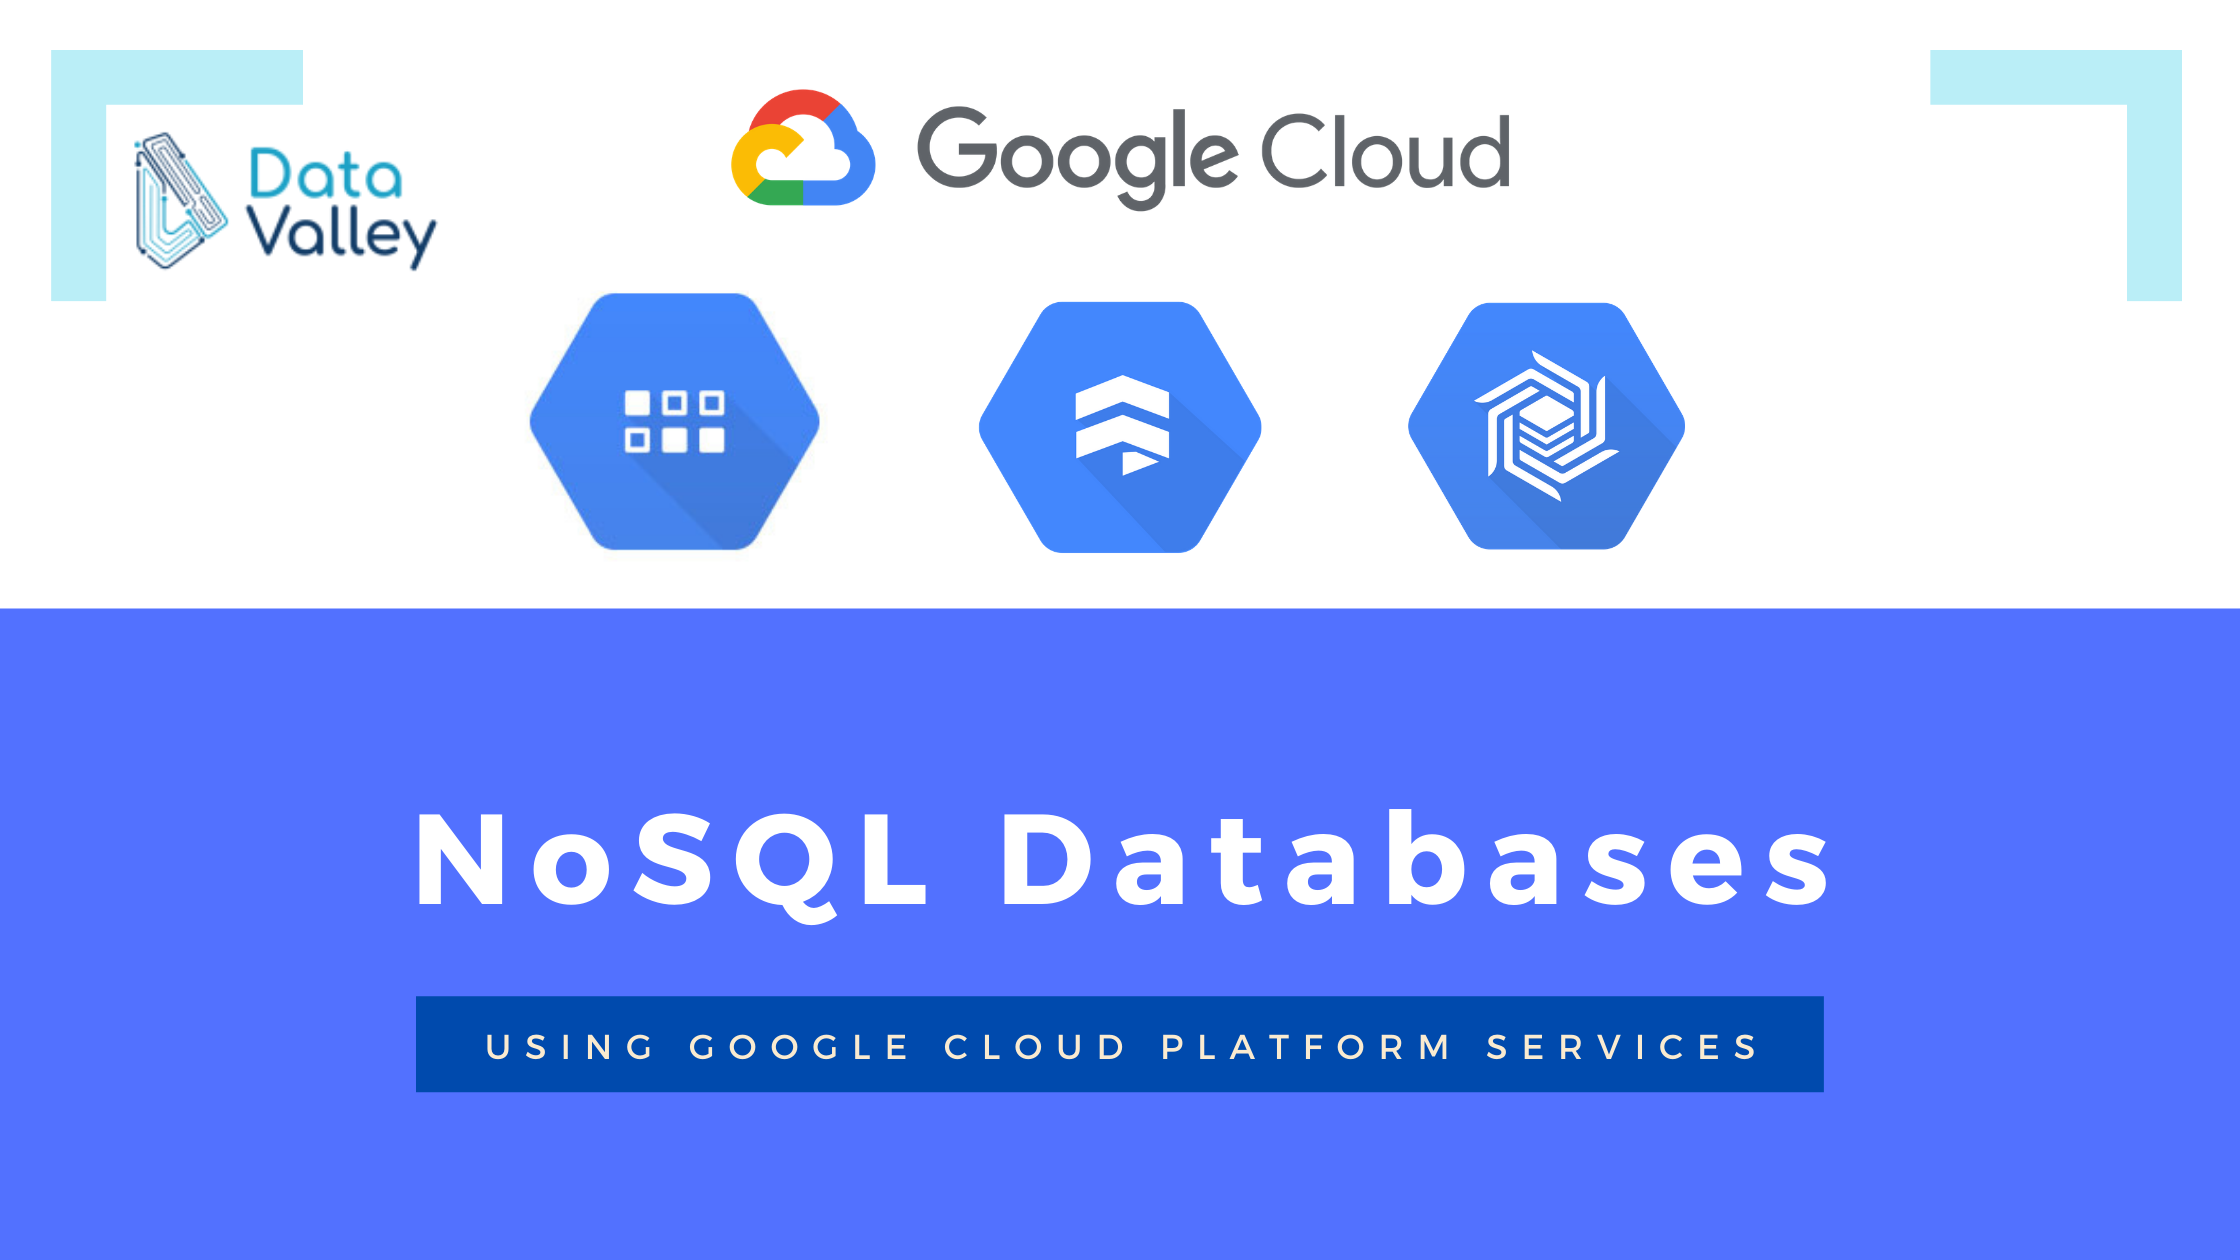 NoSQL Databases in GCP